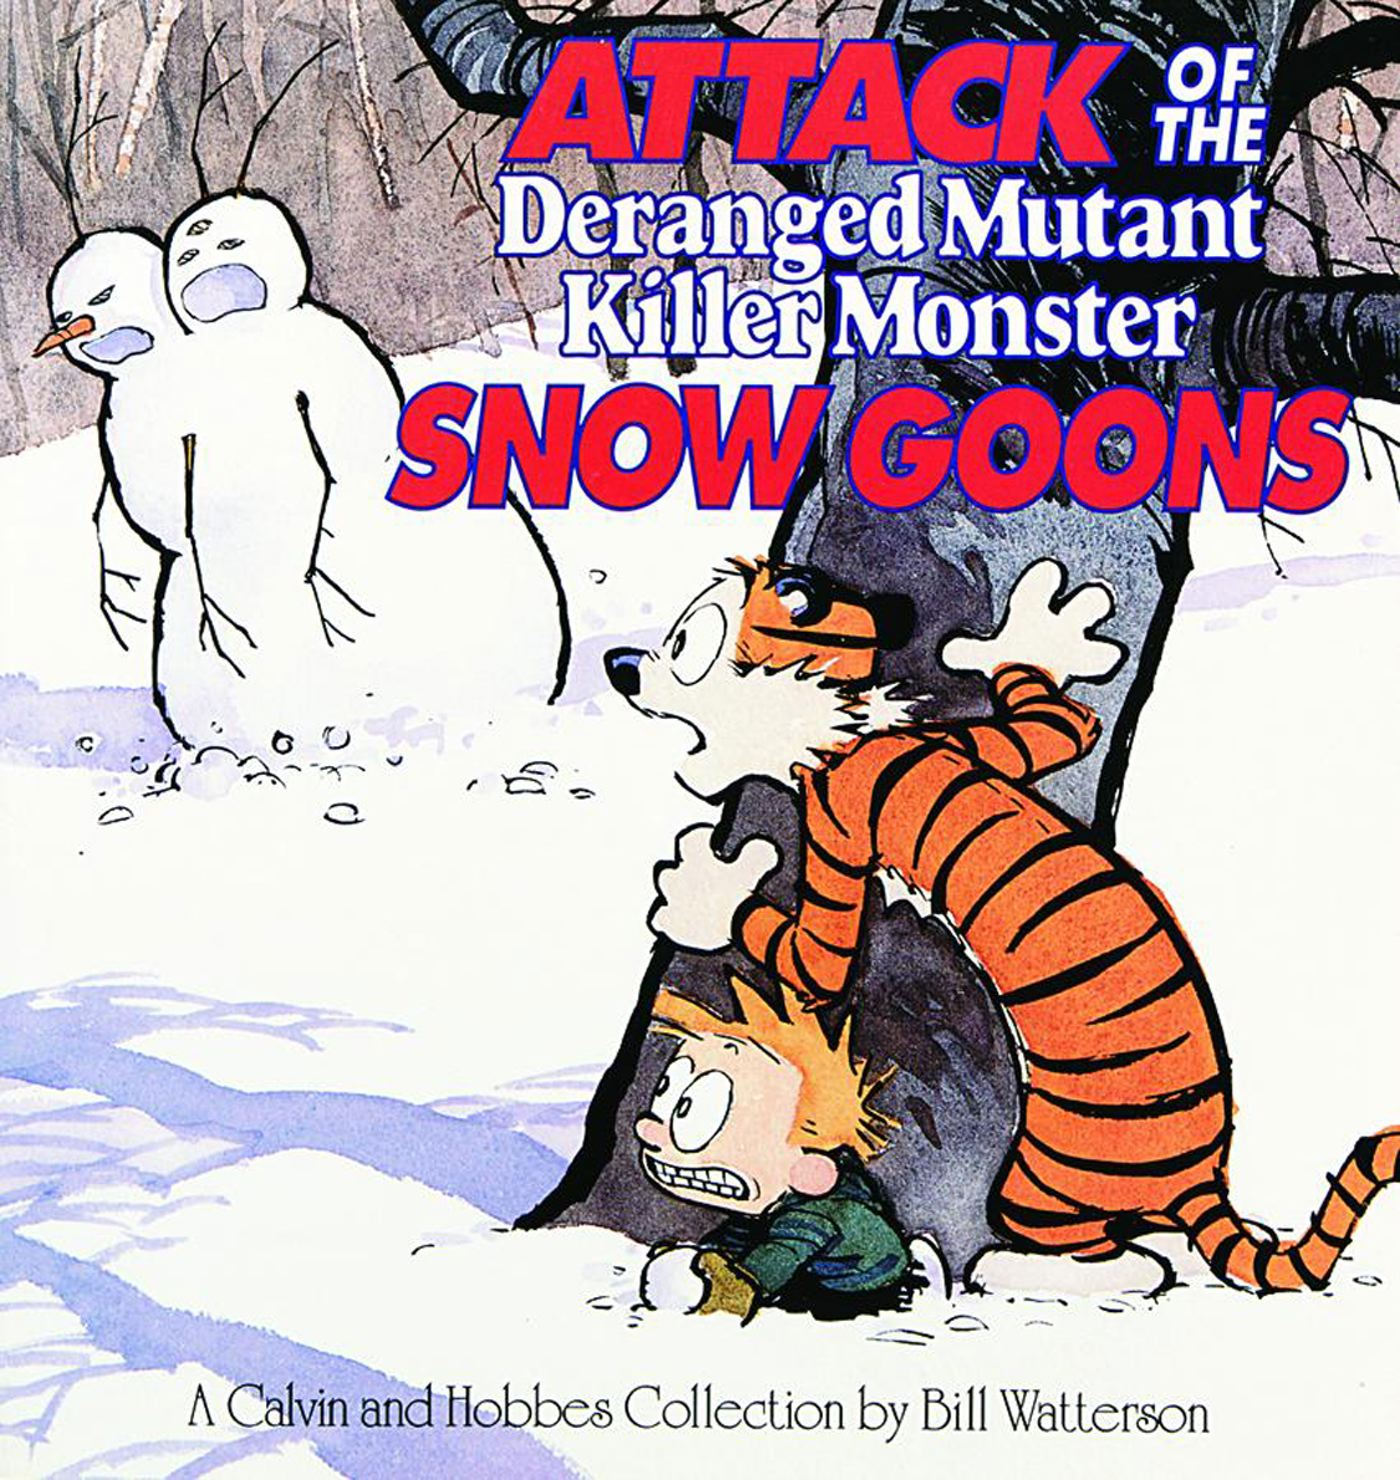 Calvin and Hobbes: Attack of the Deranged Mutant Killer Monster Snow Goons: A Calvin and Hobbes Collection (Paperback)